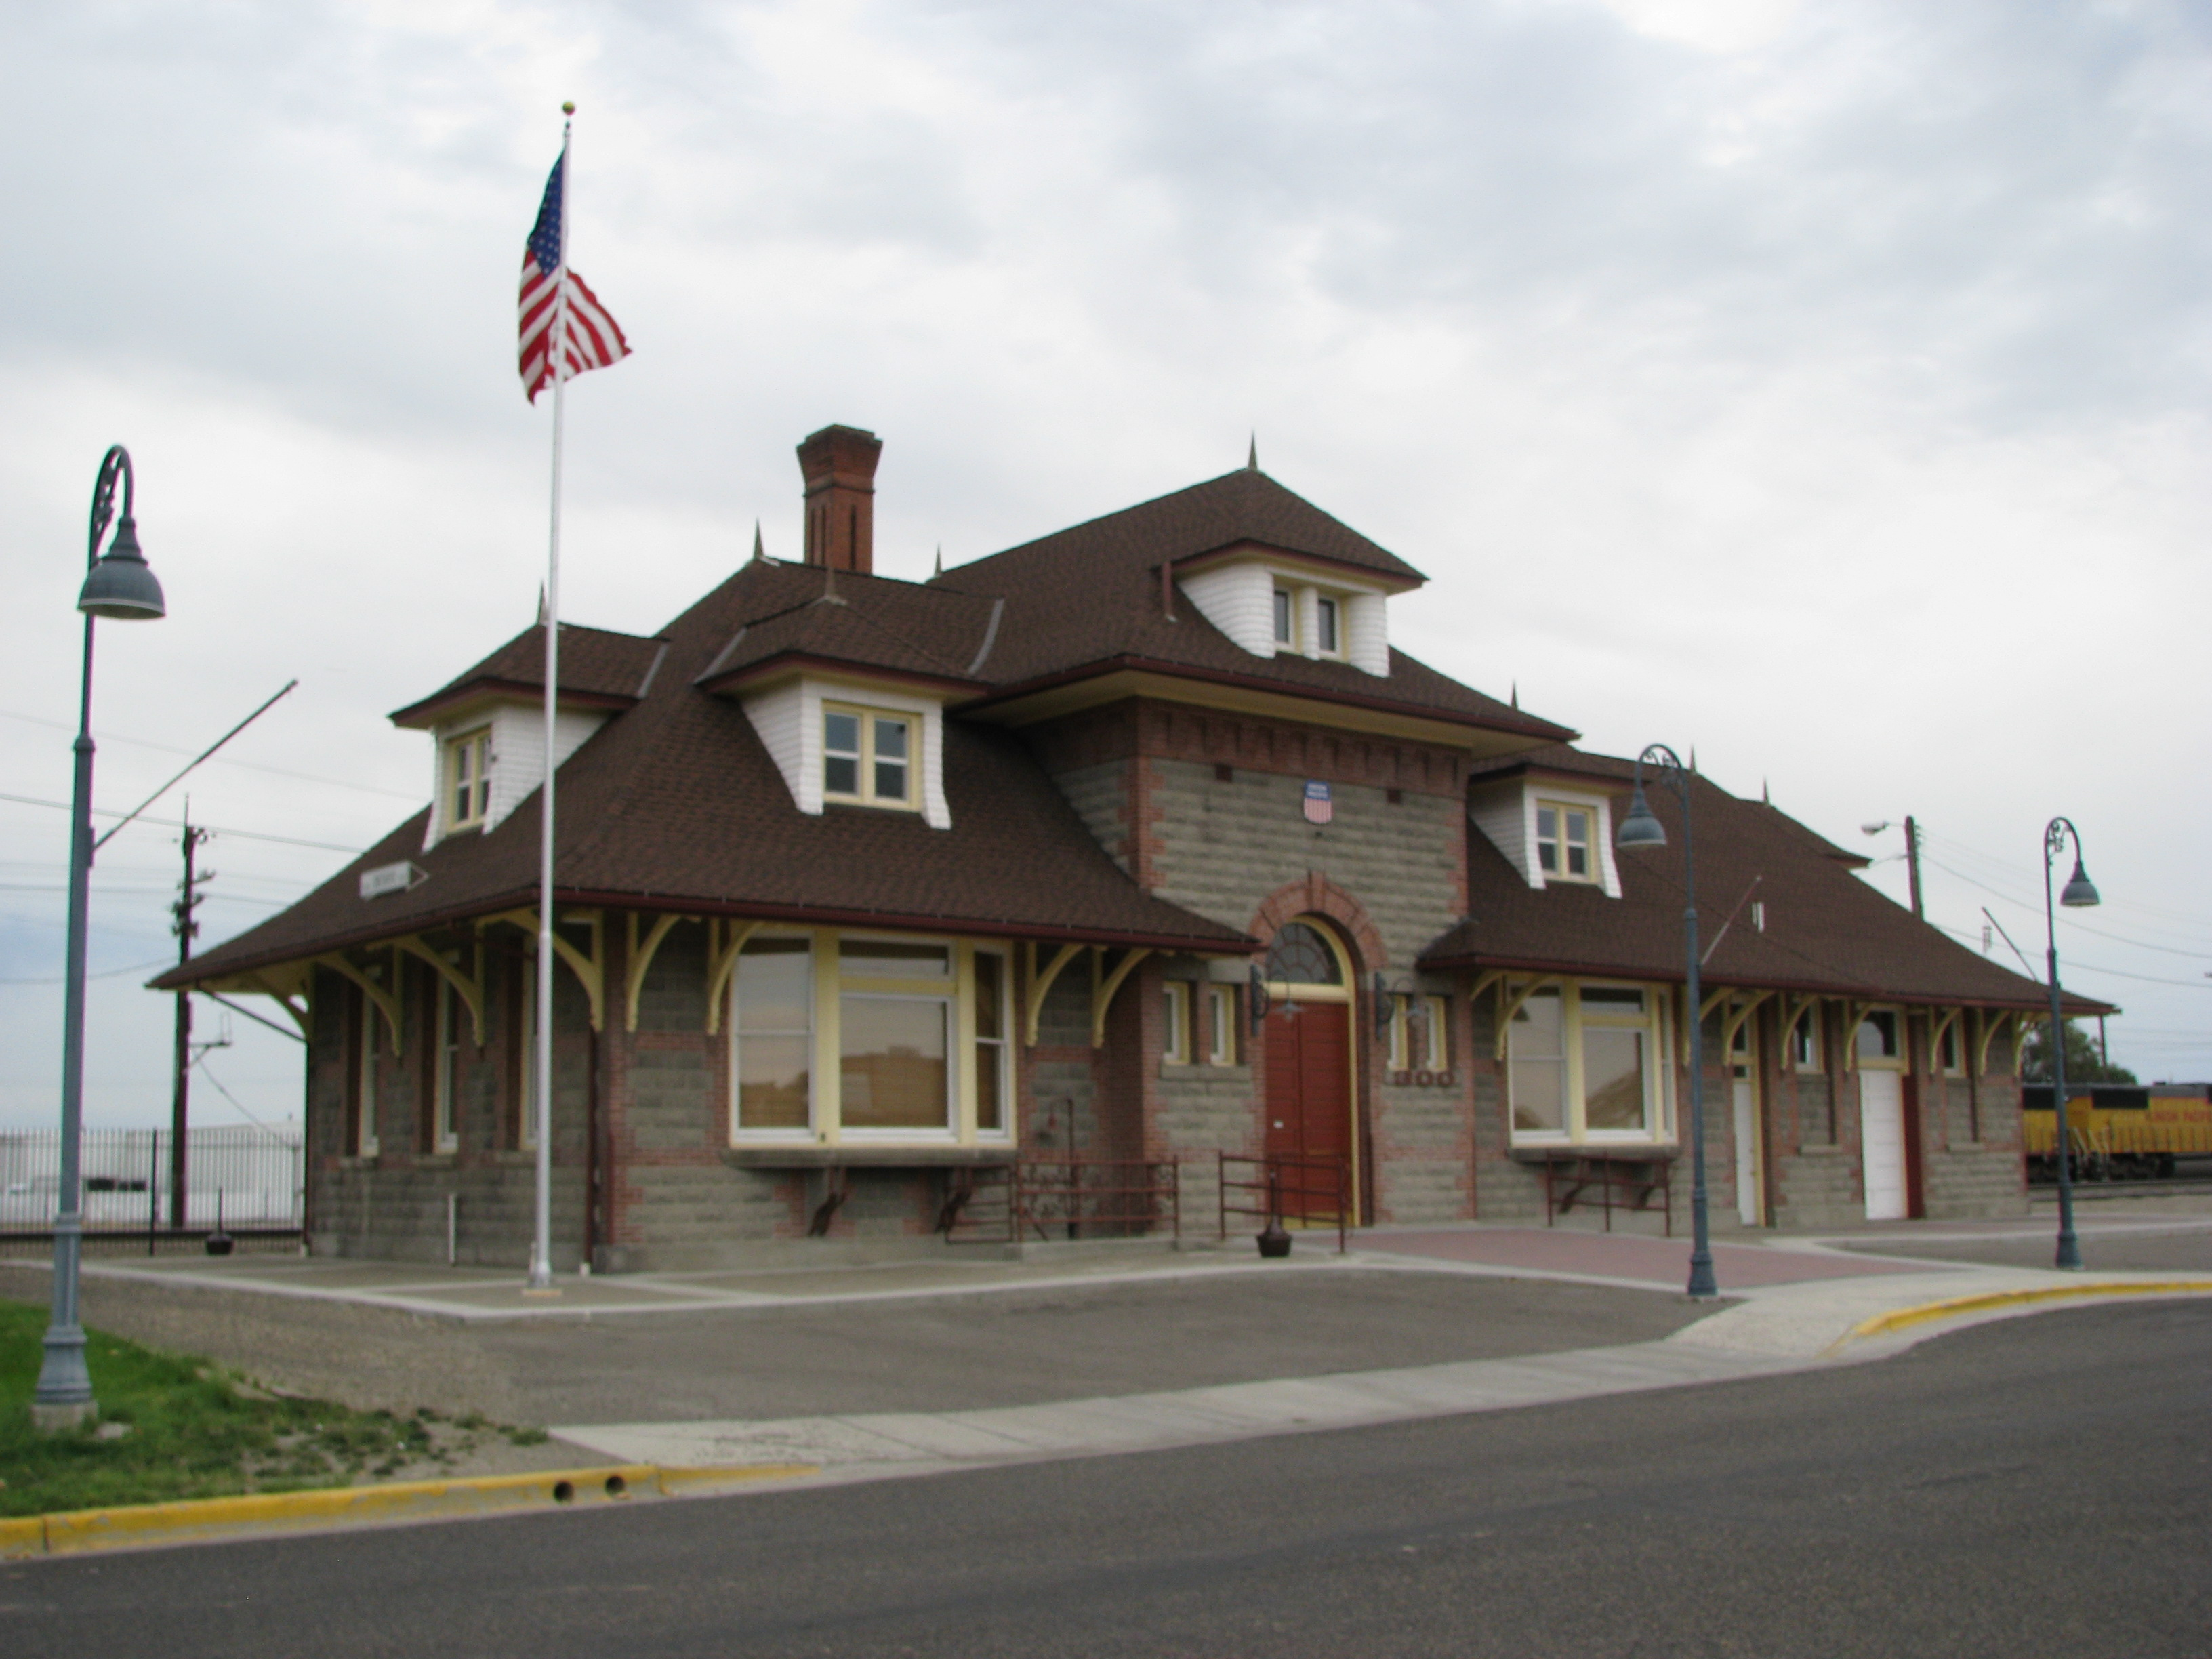 Ontario (OR) Station, 2009. Copyright Jim Hamre, used by permission.